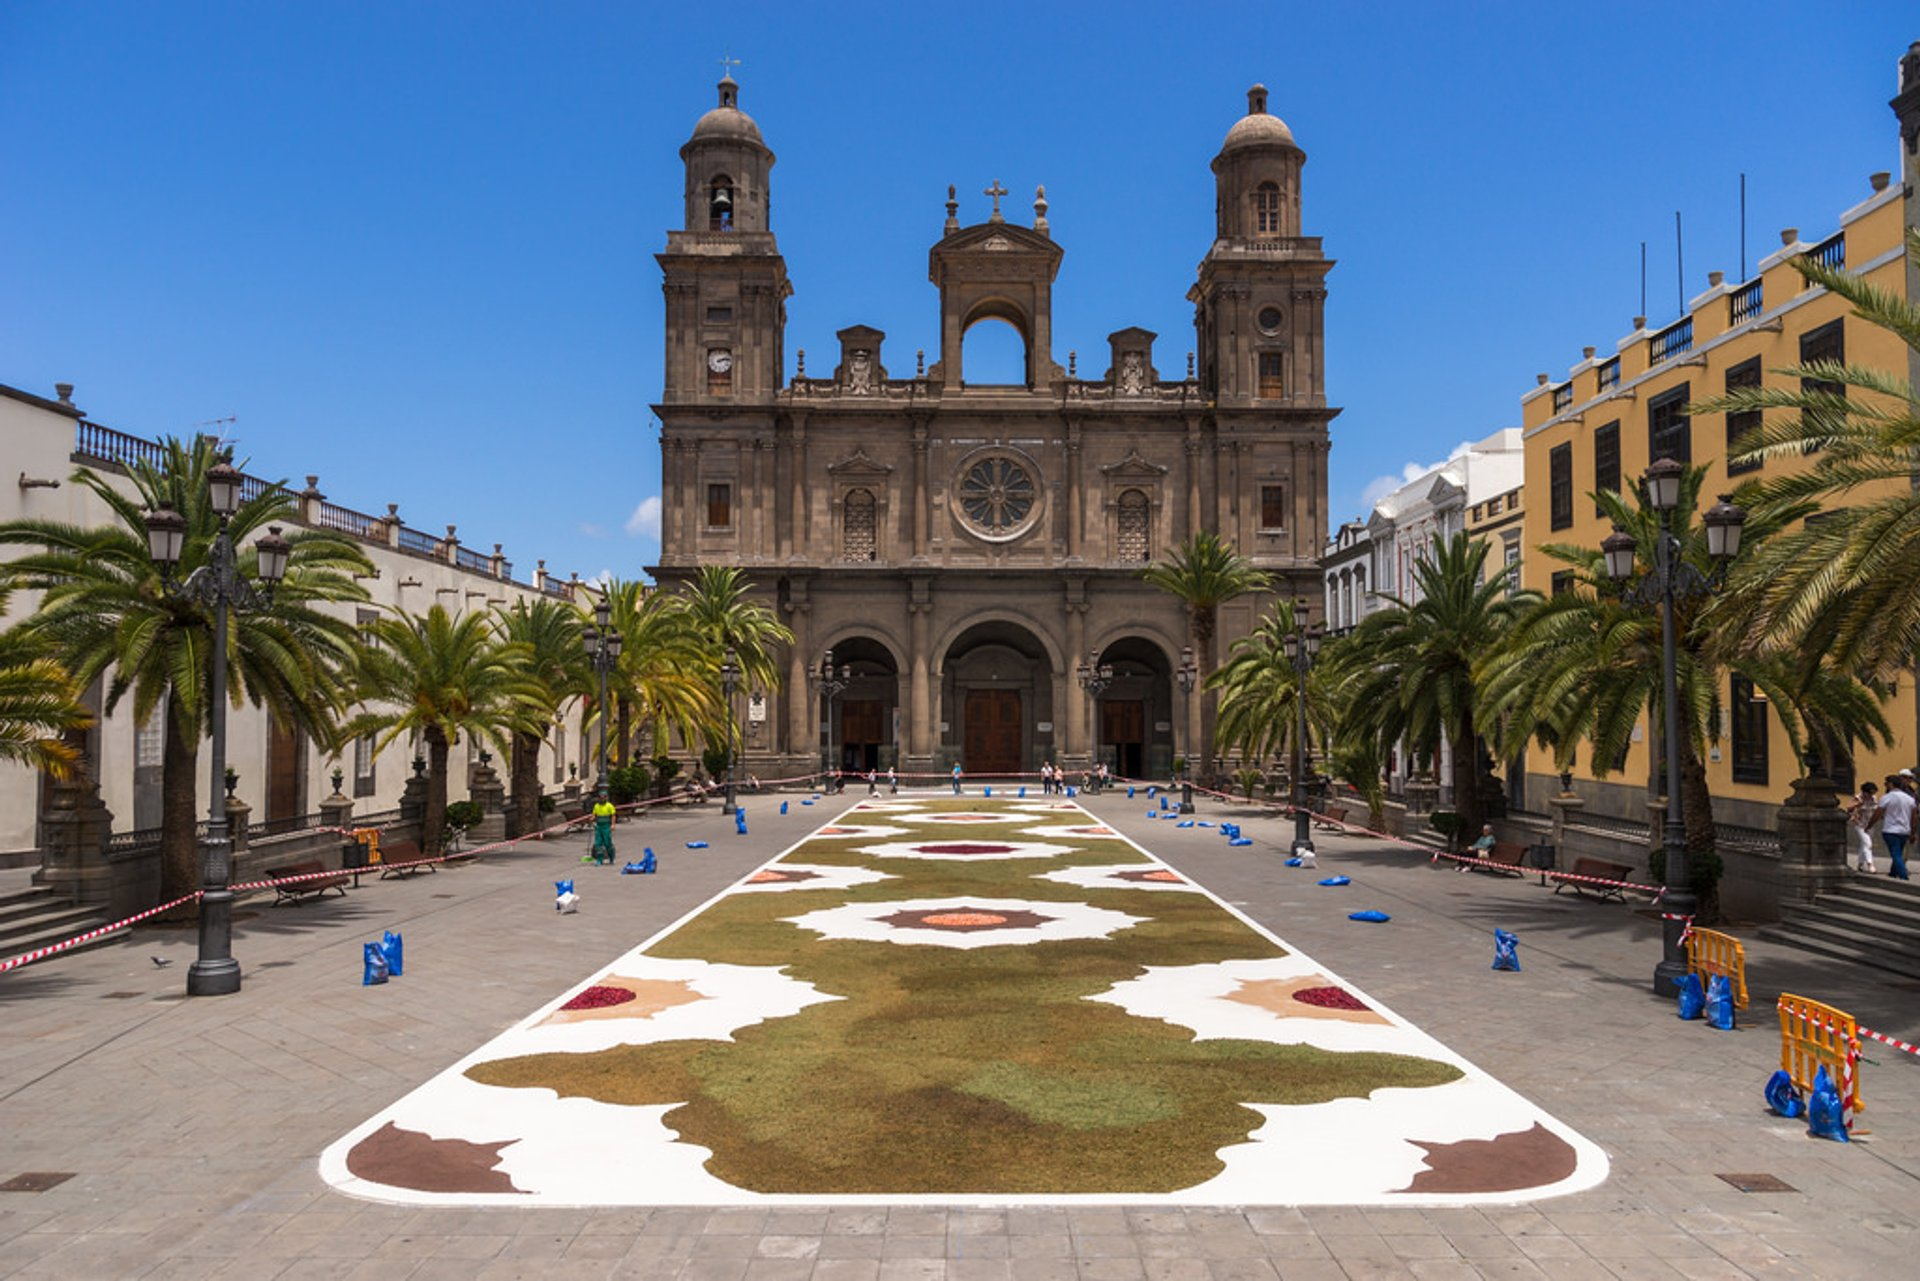 Corpus Christi in Canary Islands - Best Season 2020